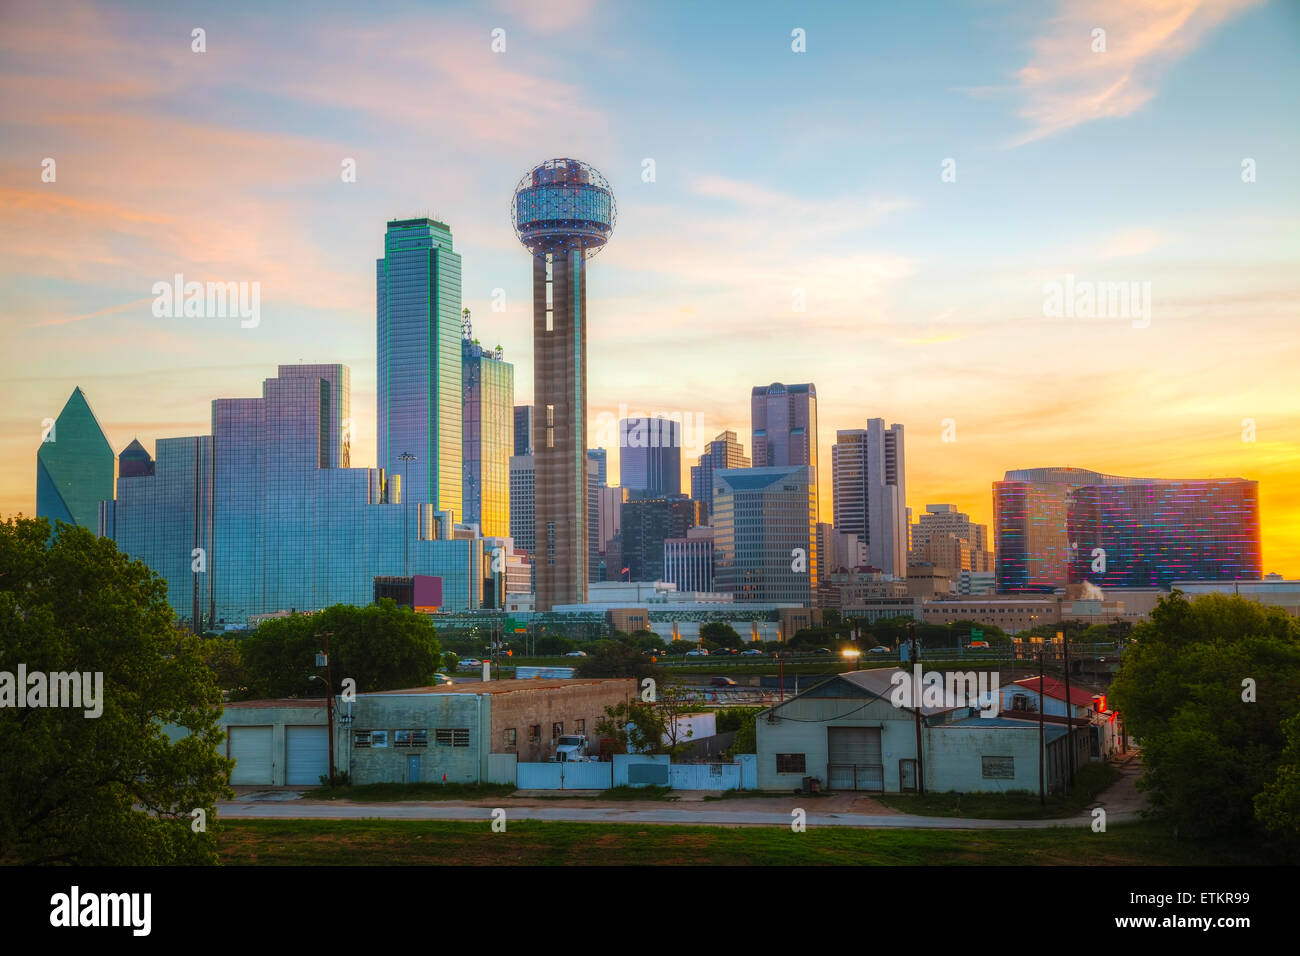 Overview of downtown Dallas in the morning - Stock Image